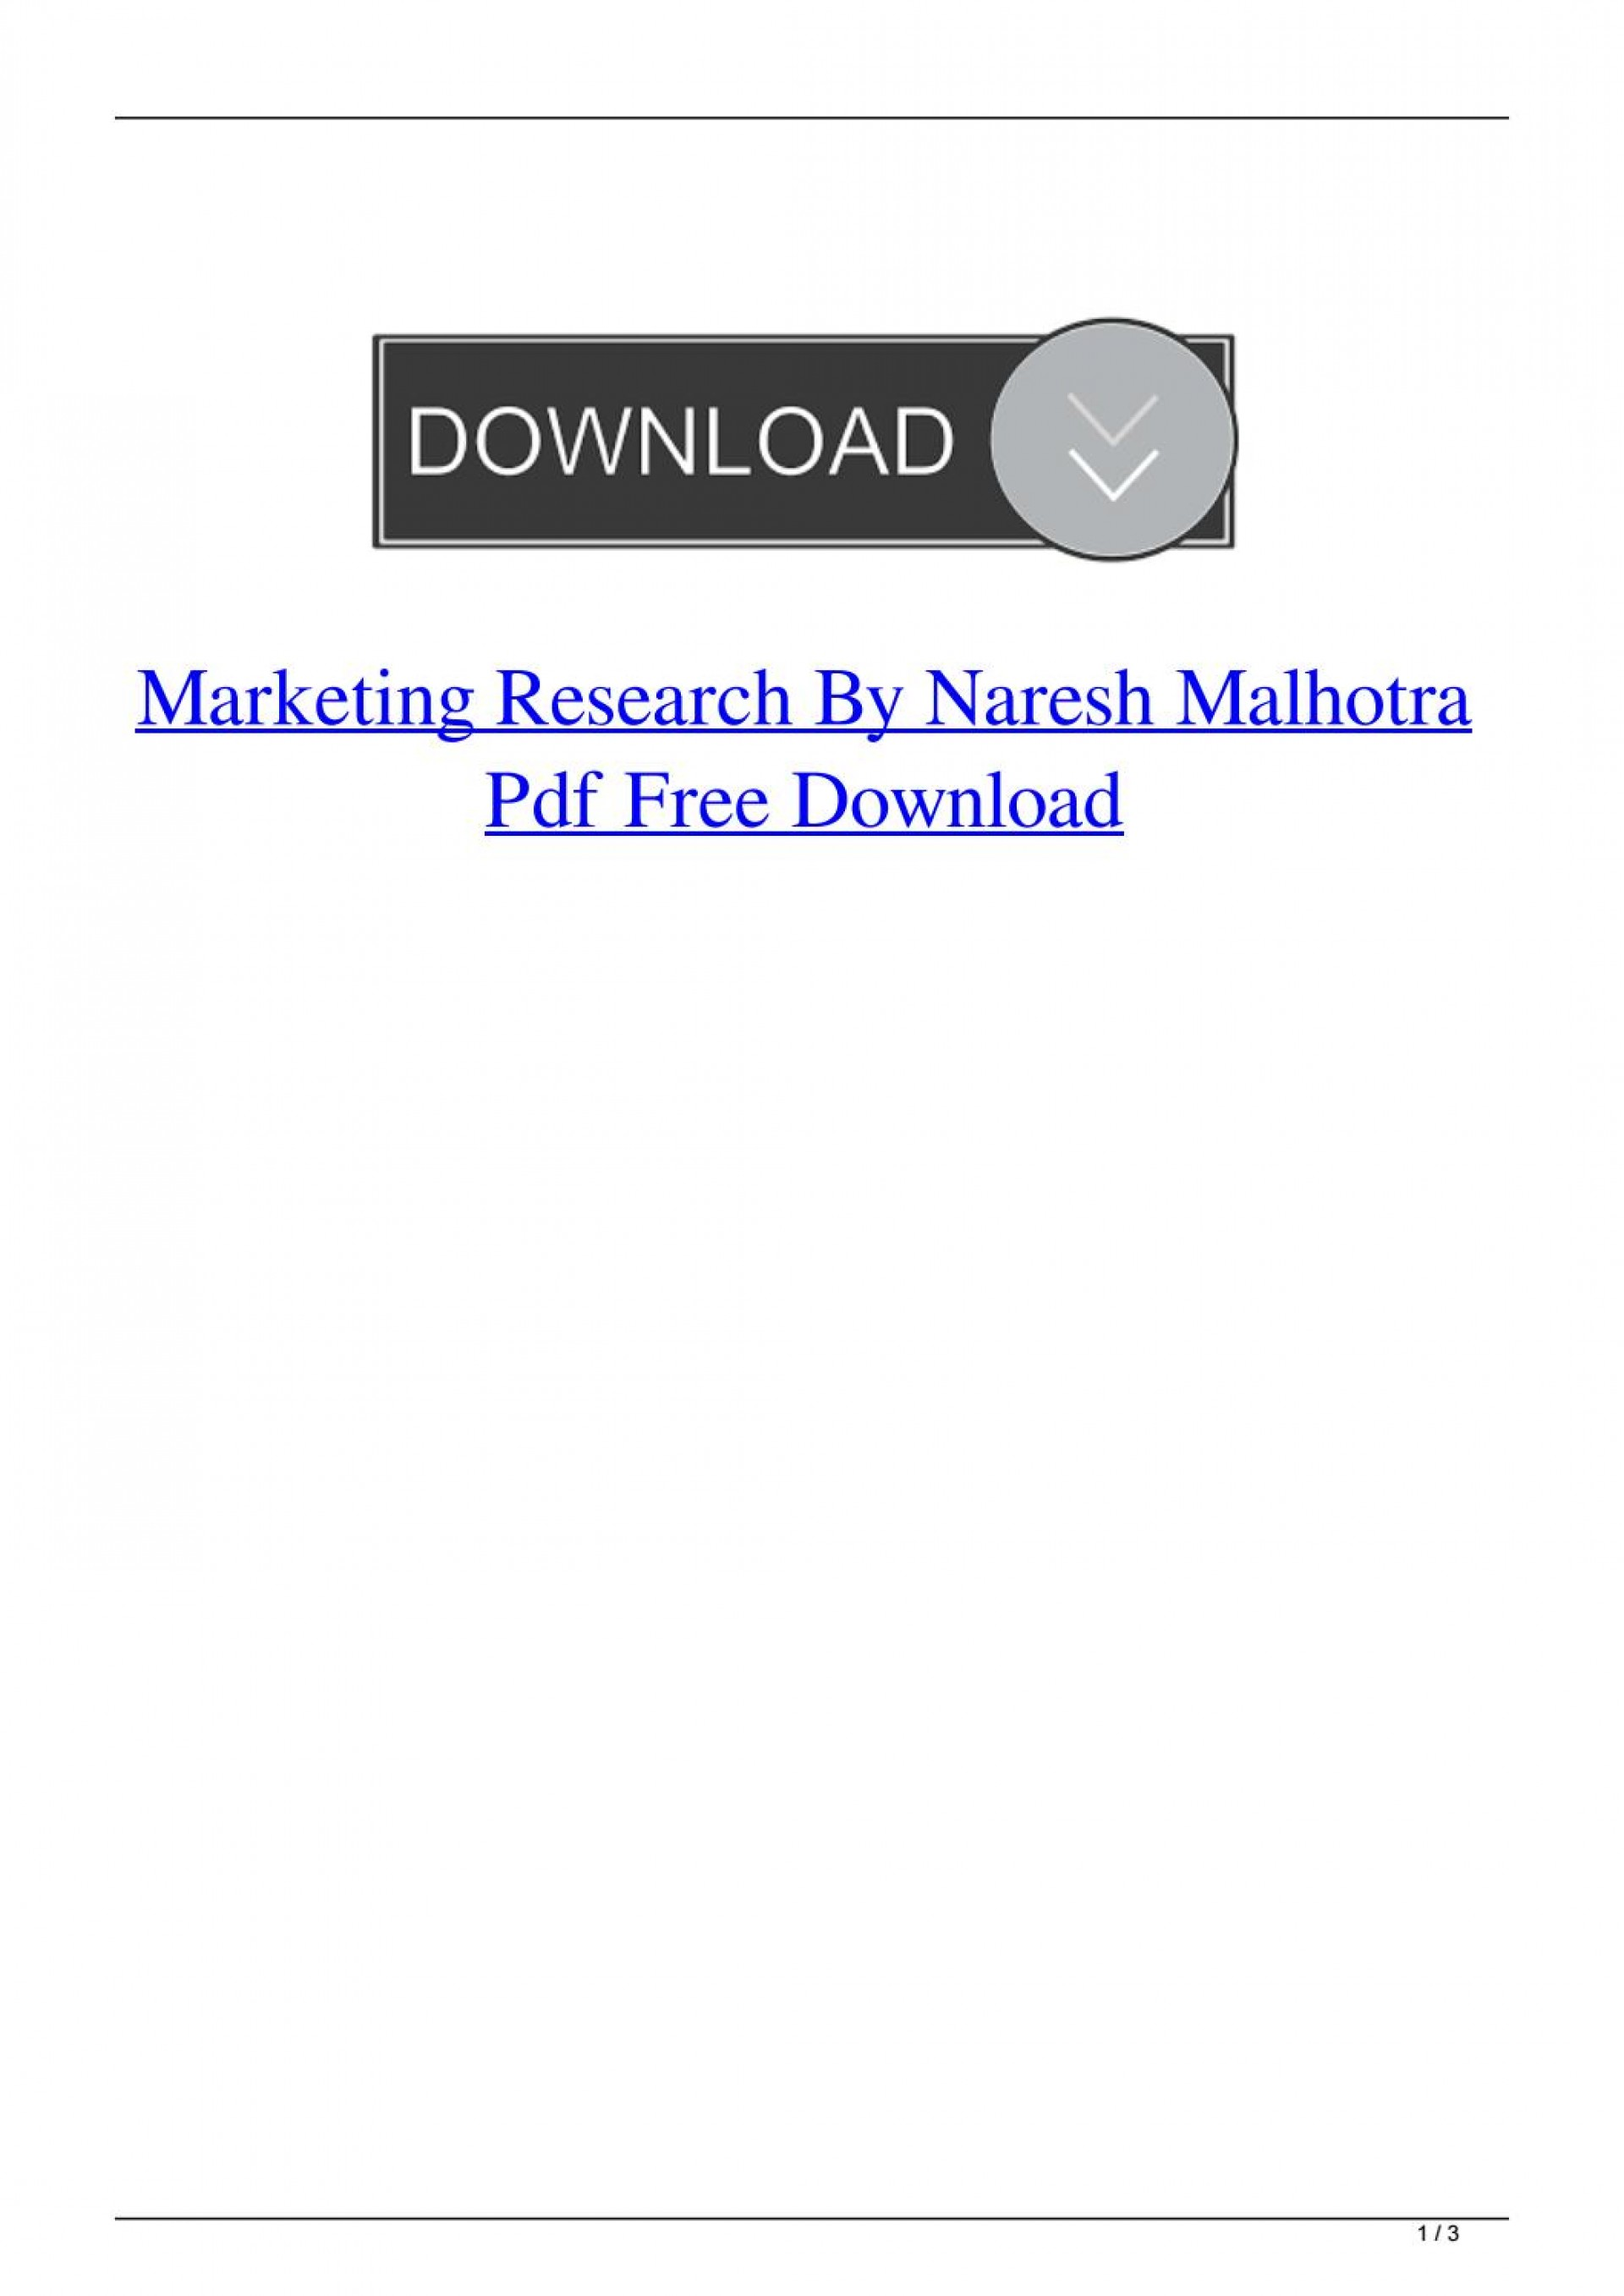 004 Research Paper Marketing Papers Pdf Free Download Page 1 Impressive 1920